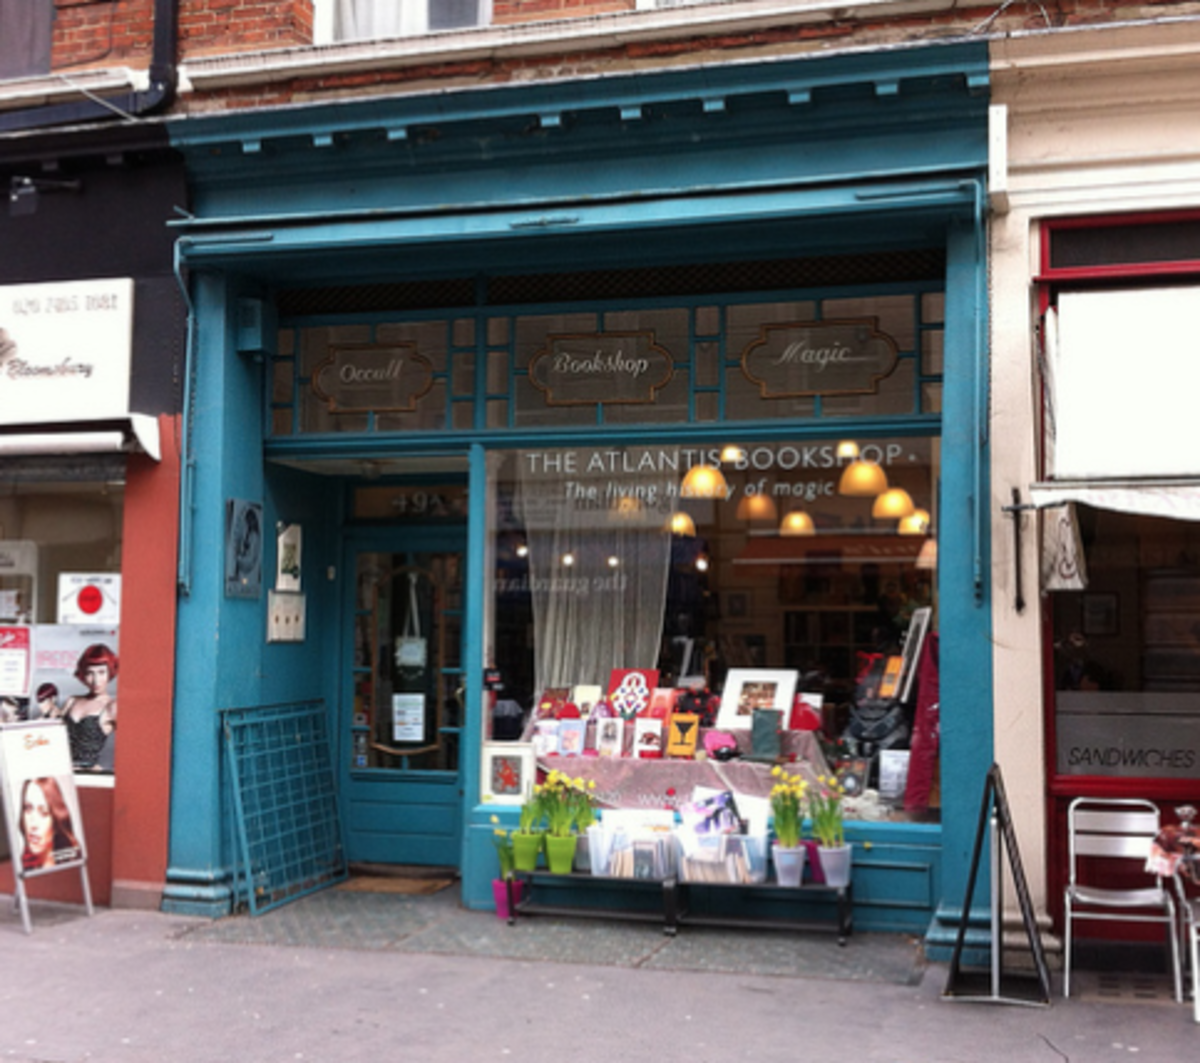 Atlantis Bookshop is a historical place for British witches.